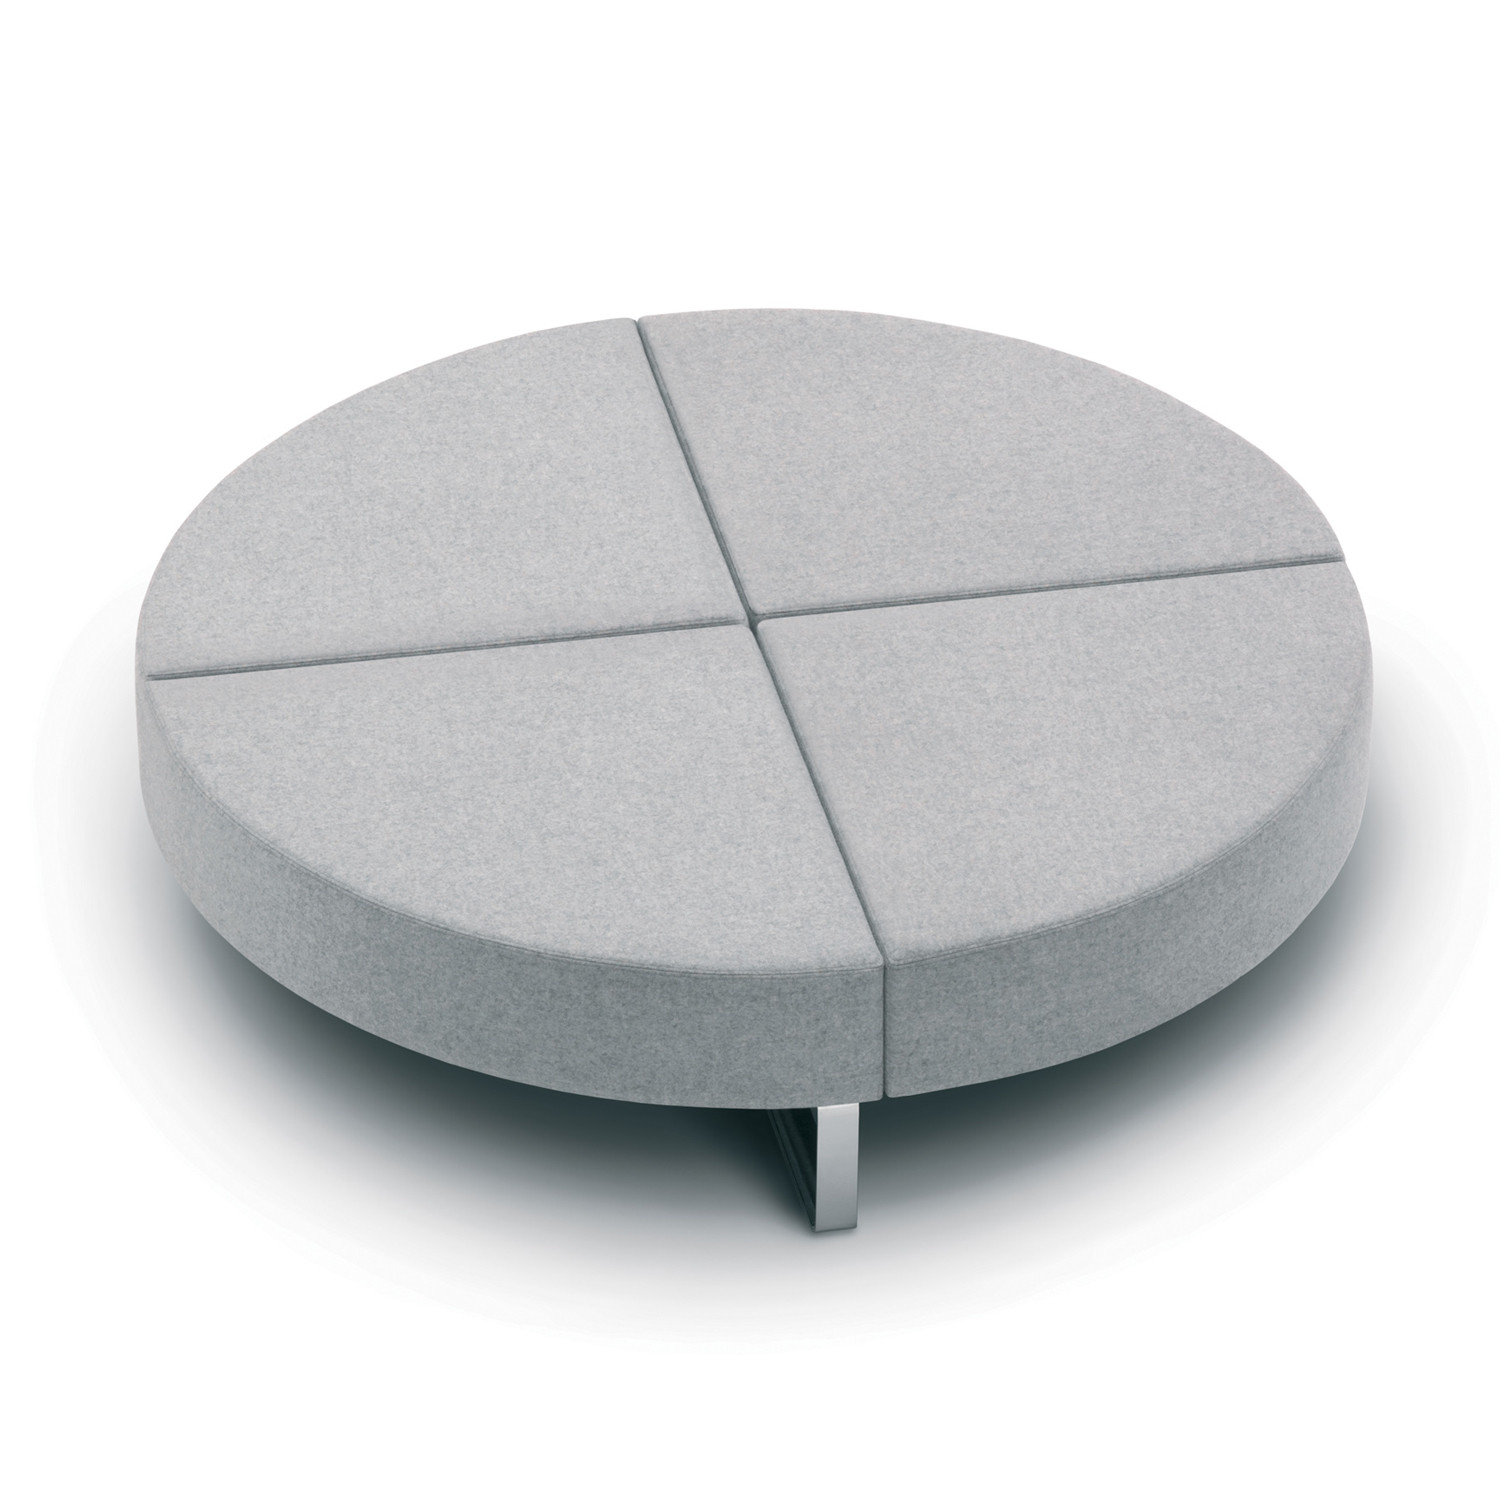 Intro Modular Bench Circular Wedge